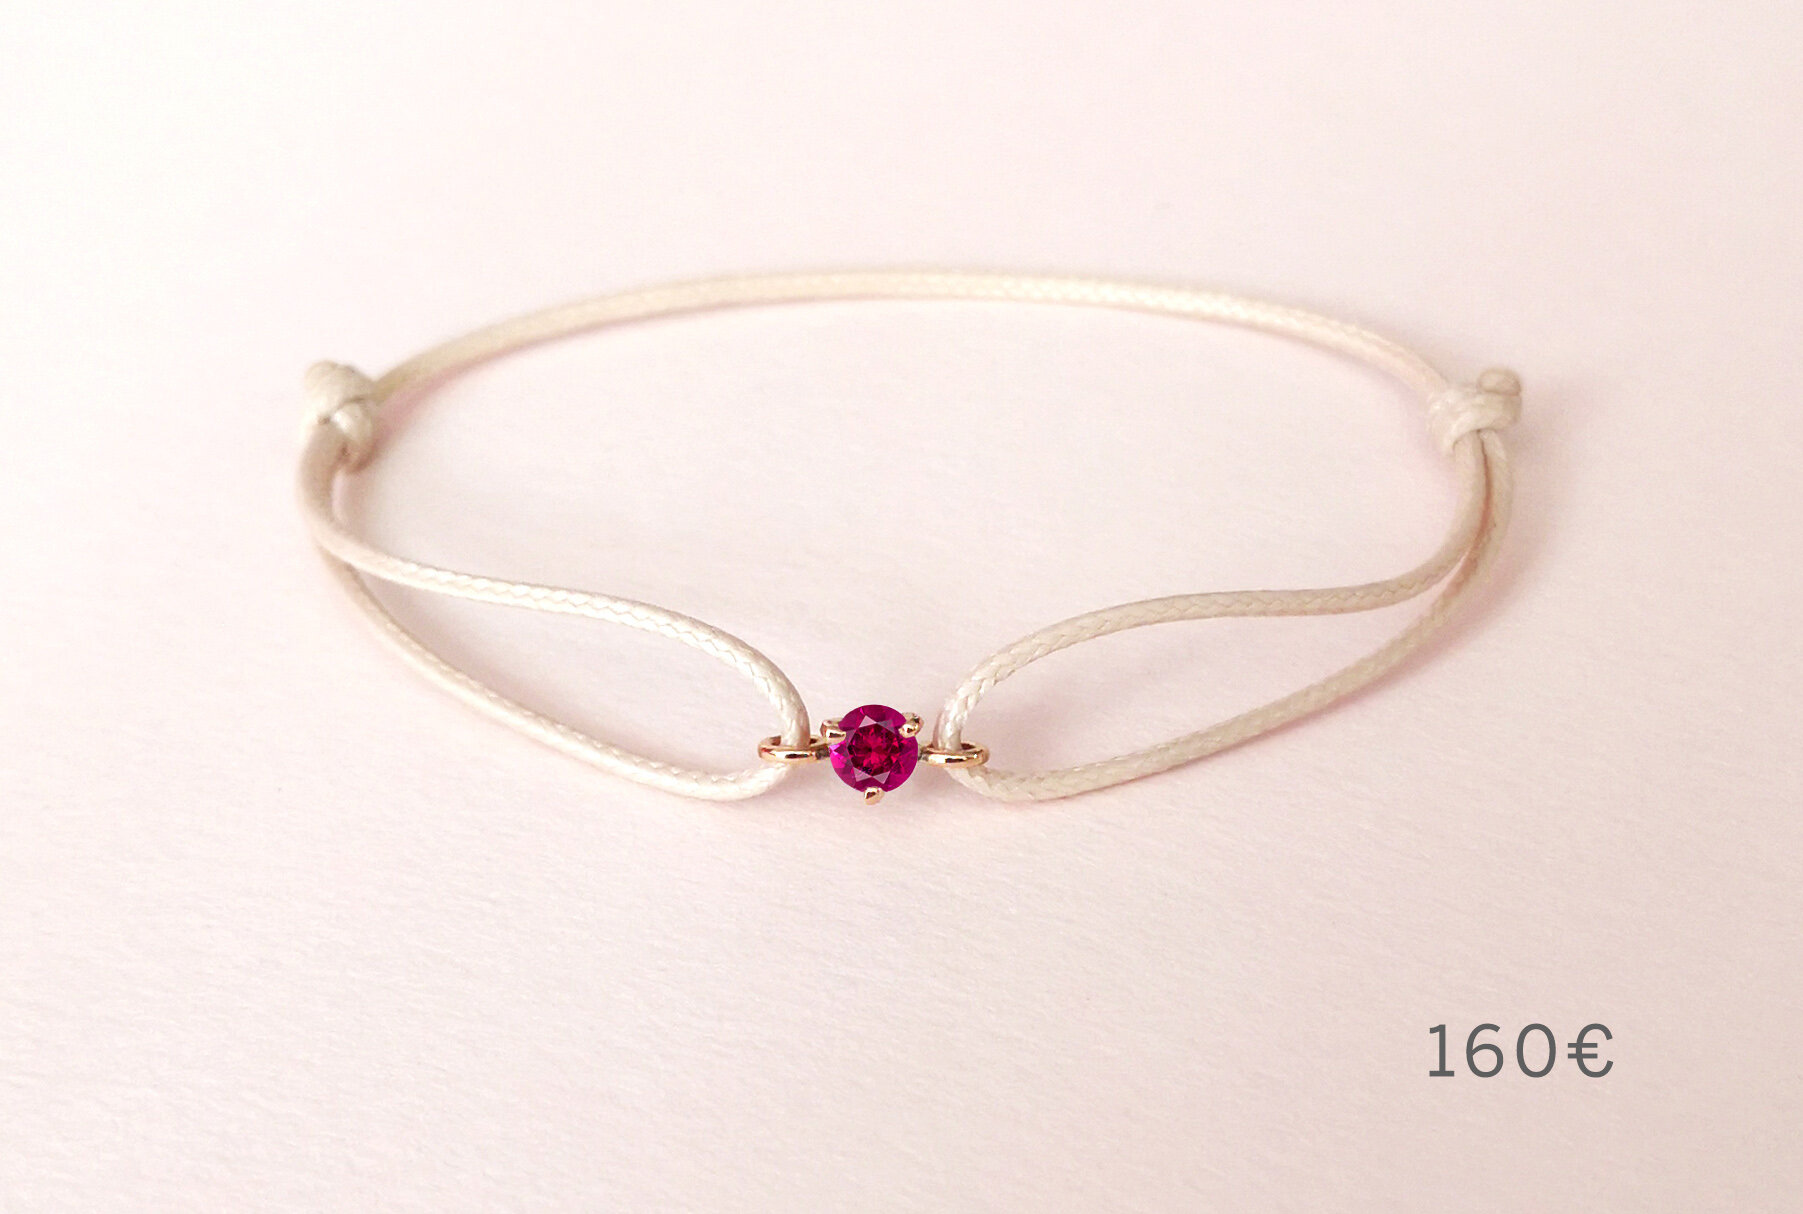 Bracelet Pause Goûter tourmaline rose, Collection Weekends Express - Courpré Joaillerie - Fairmined French Jewelry